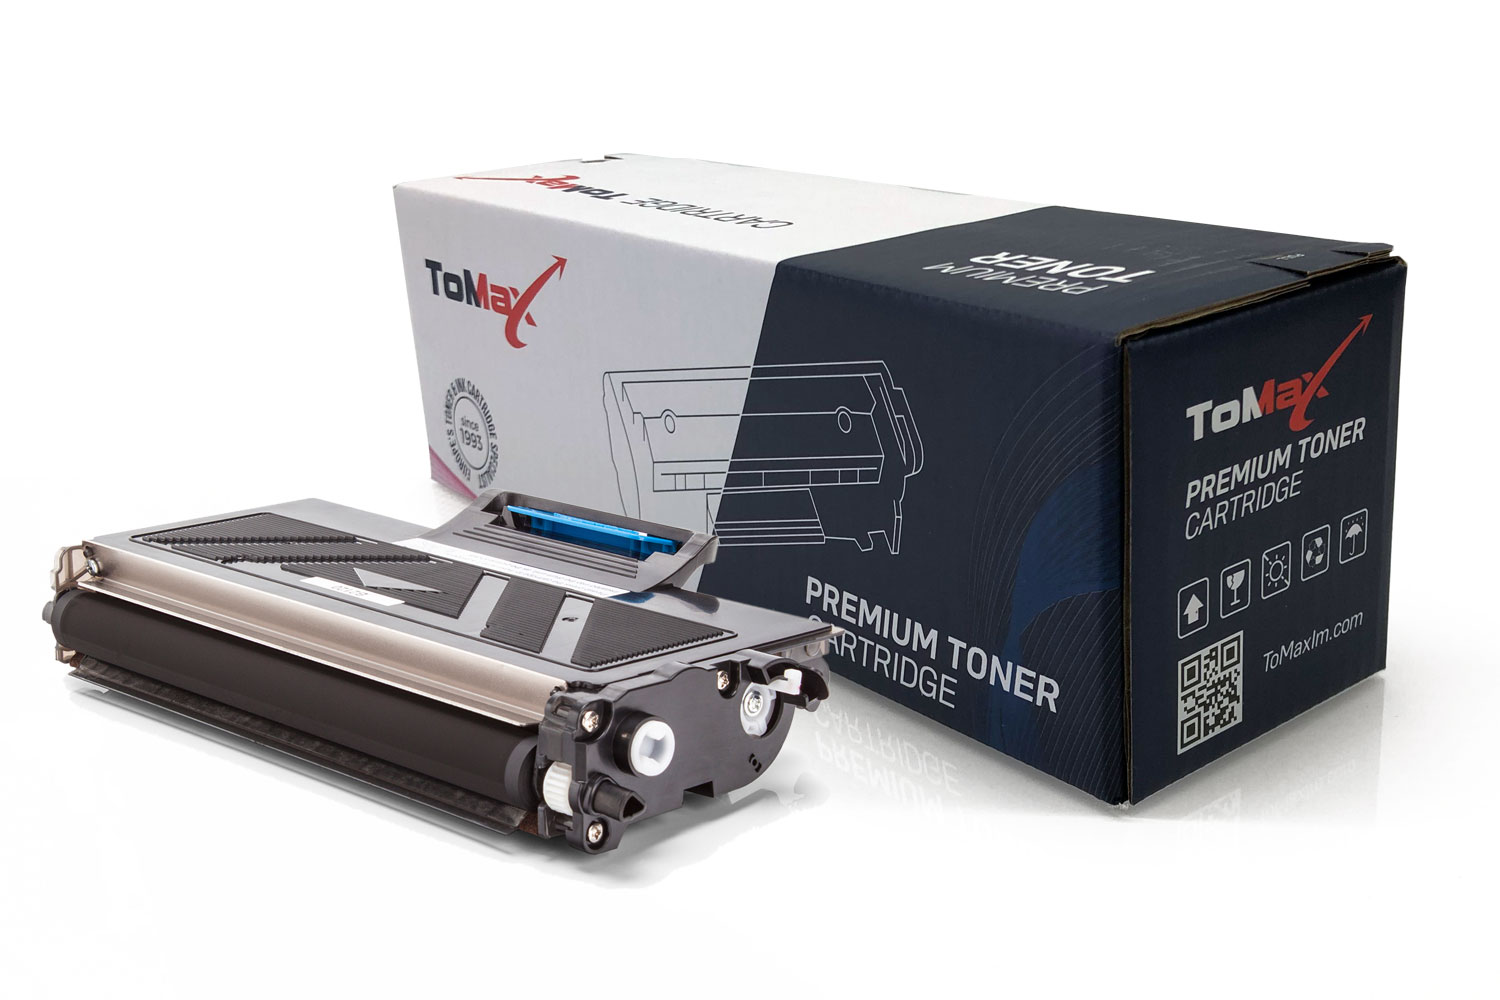 ToMax Premium Toner Cartridge replaces Brother TN-2220 Black